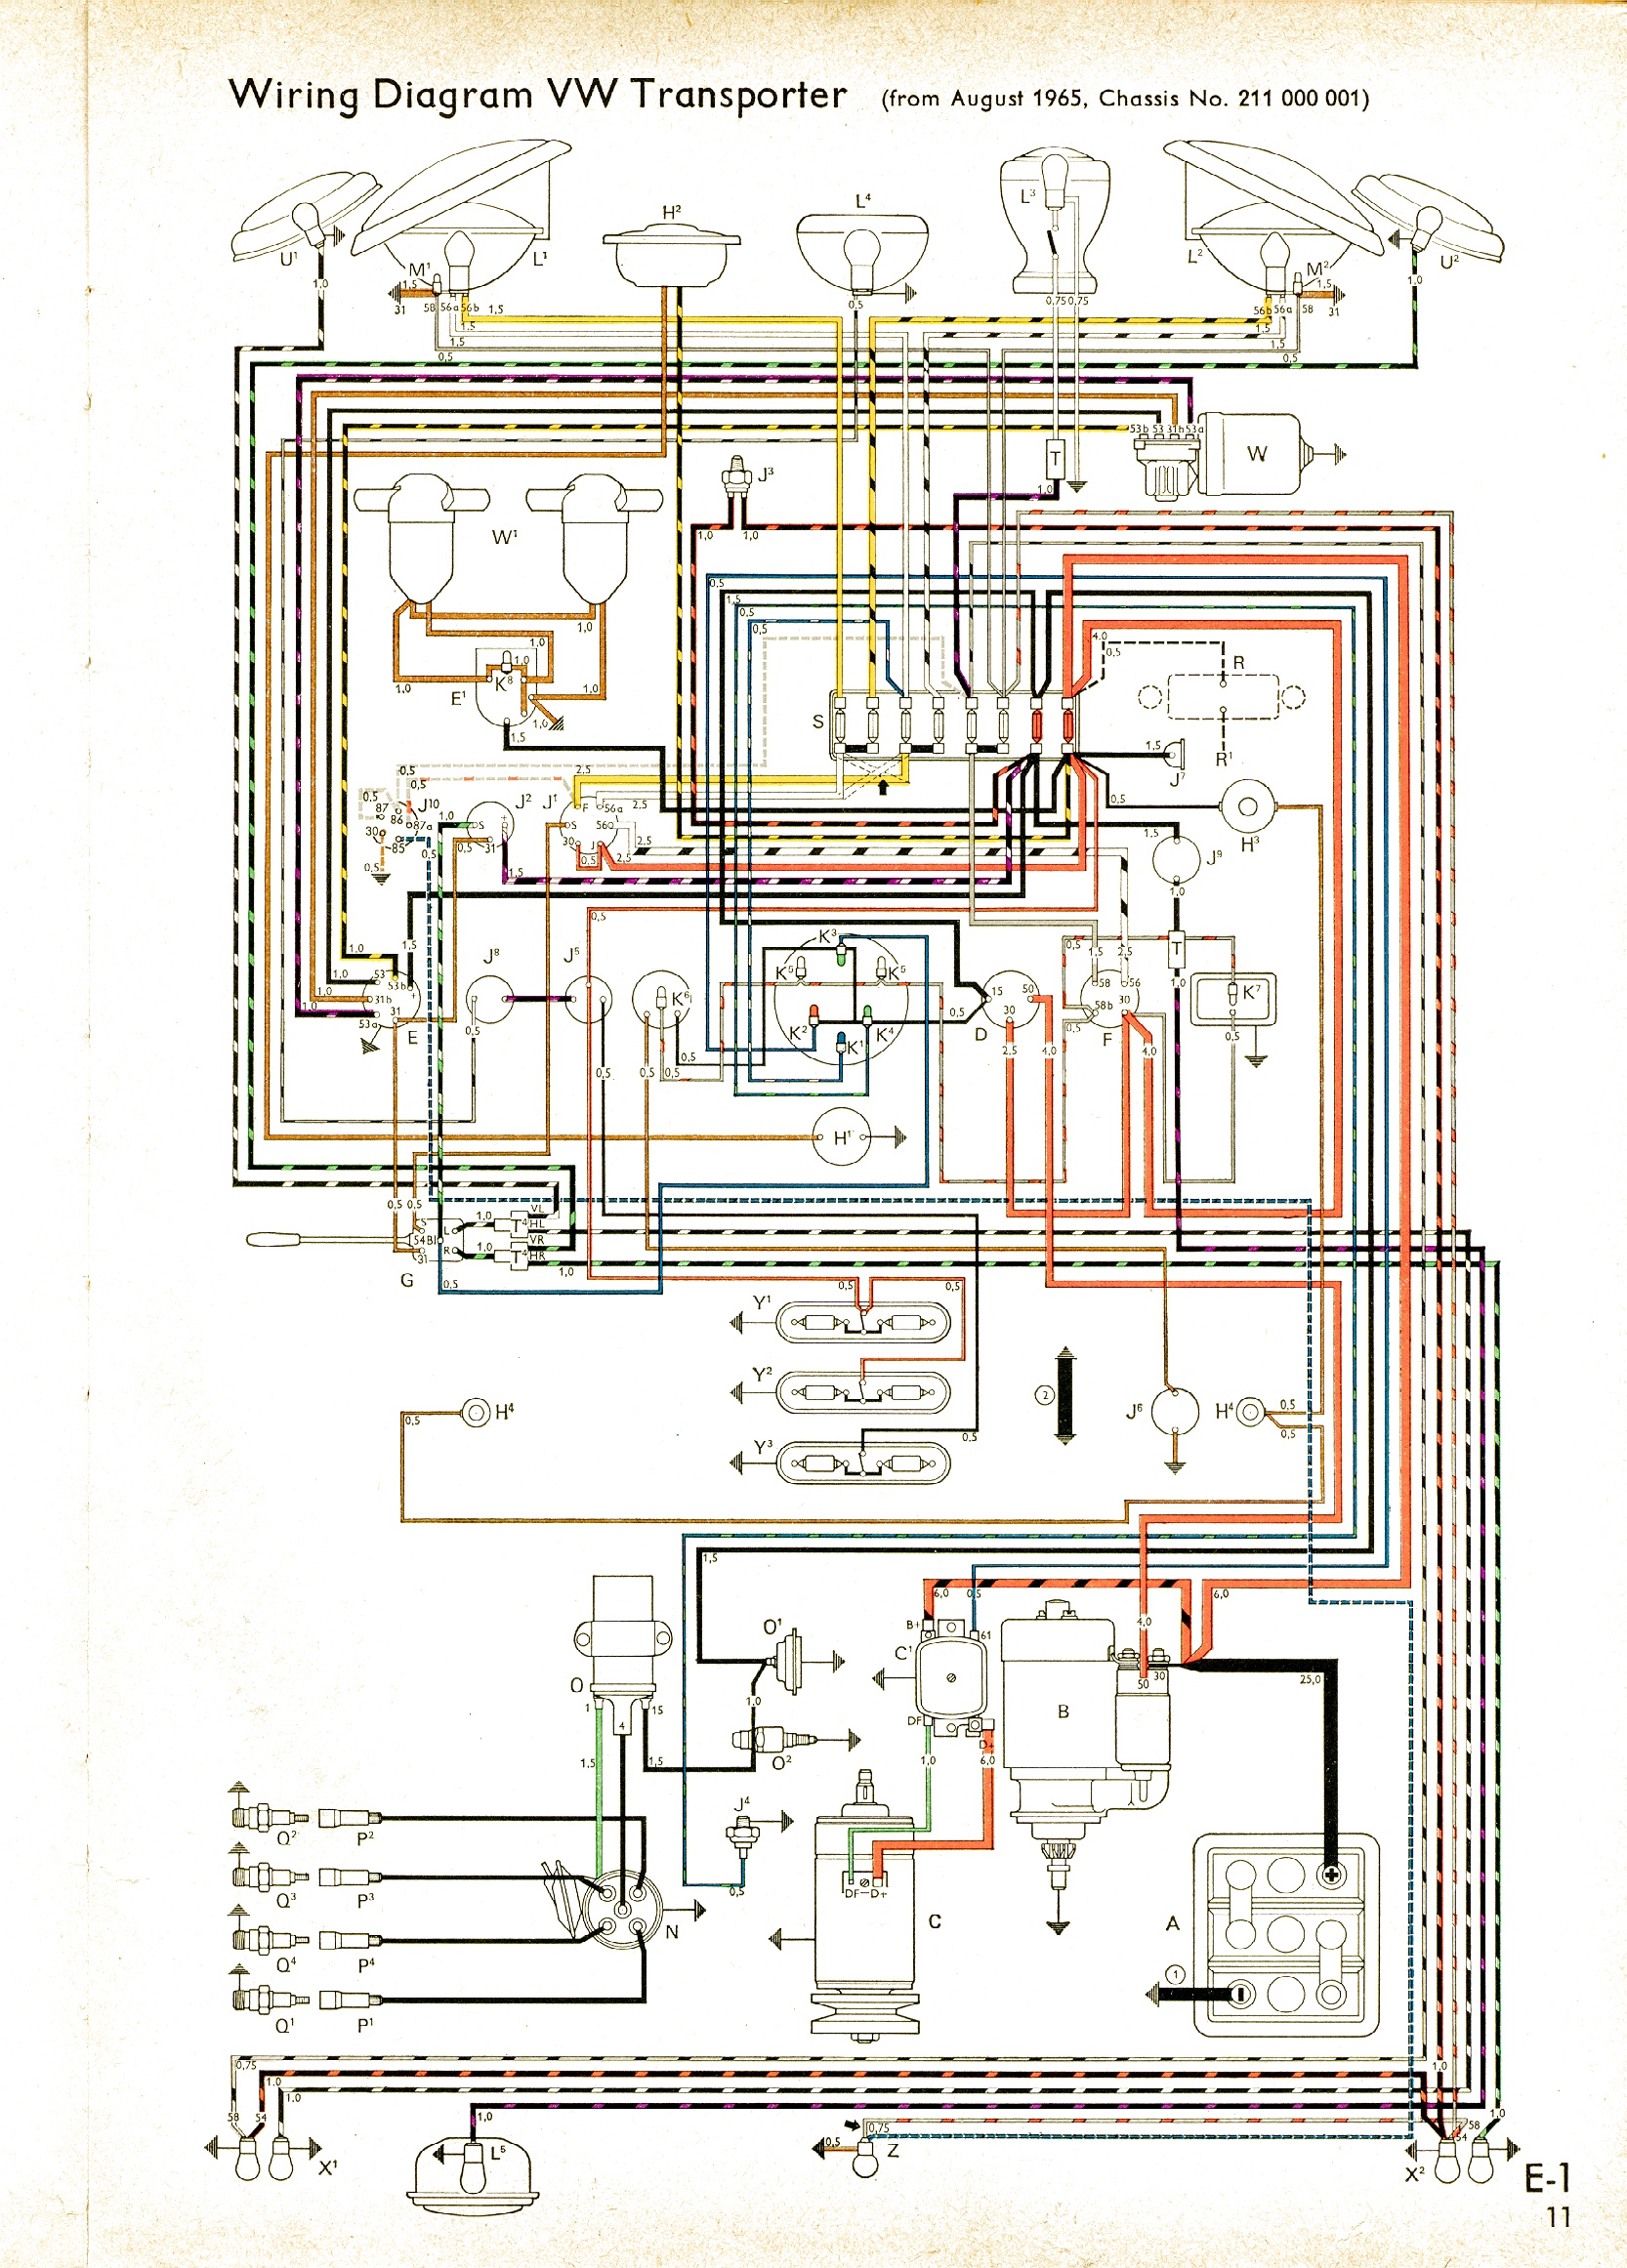 bus 65 vintagebus com vw bus (and other) wiring diagrams 1965 vw beetle wiring diagram at nearapp.co